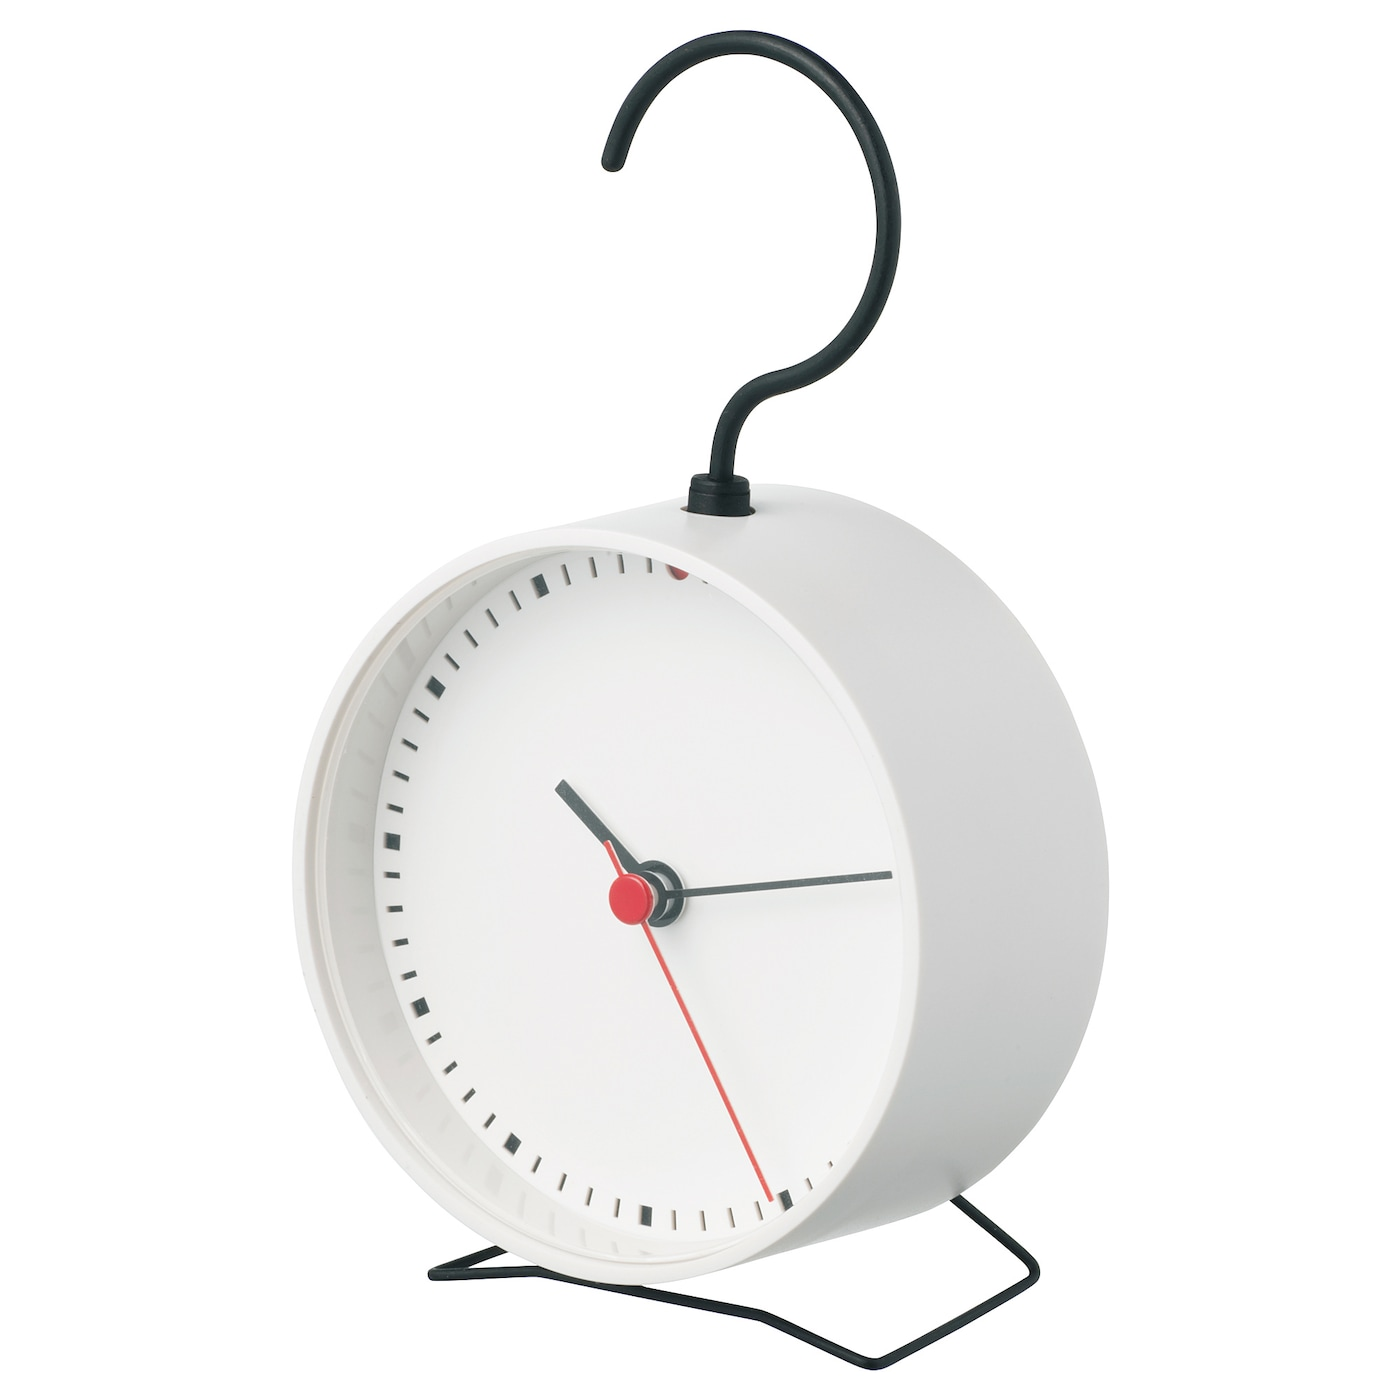 IKEA SNIFFA clock No disturbing ticking sounds since the clock has a silent quartz movement.